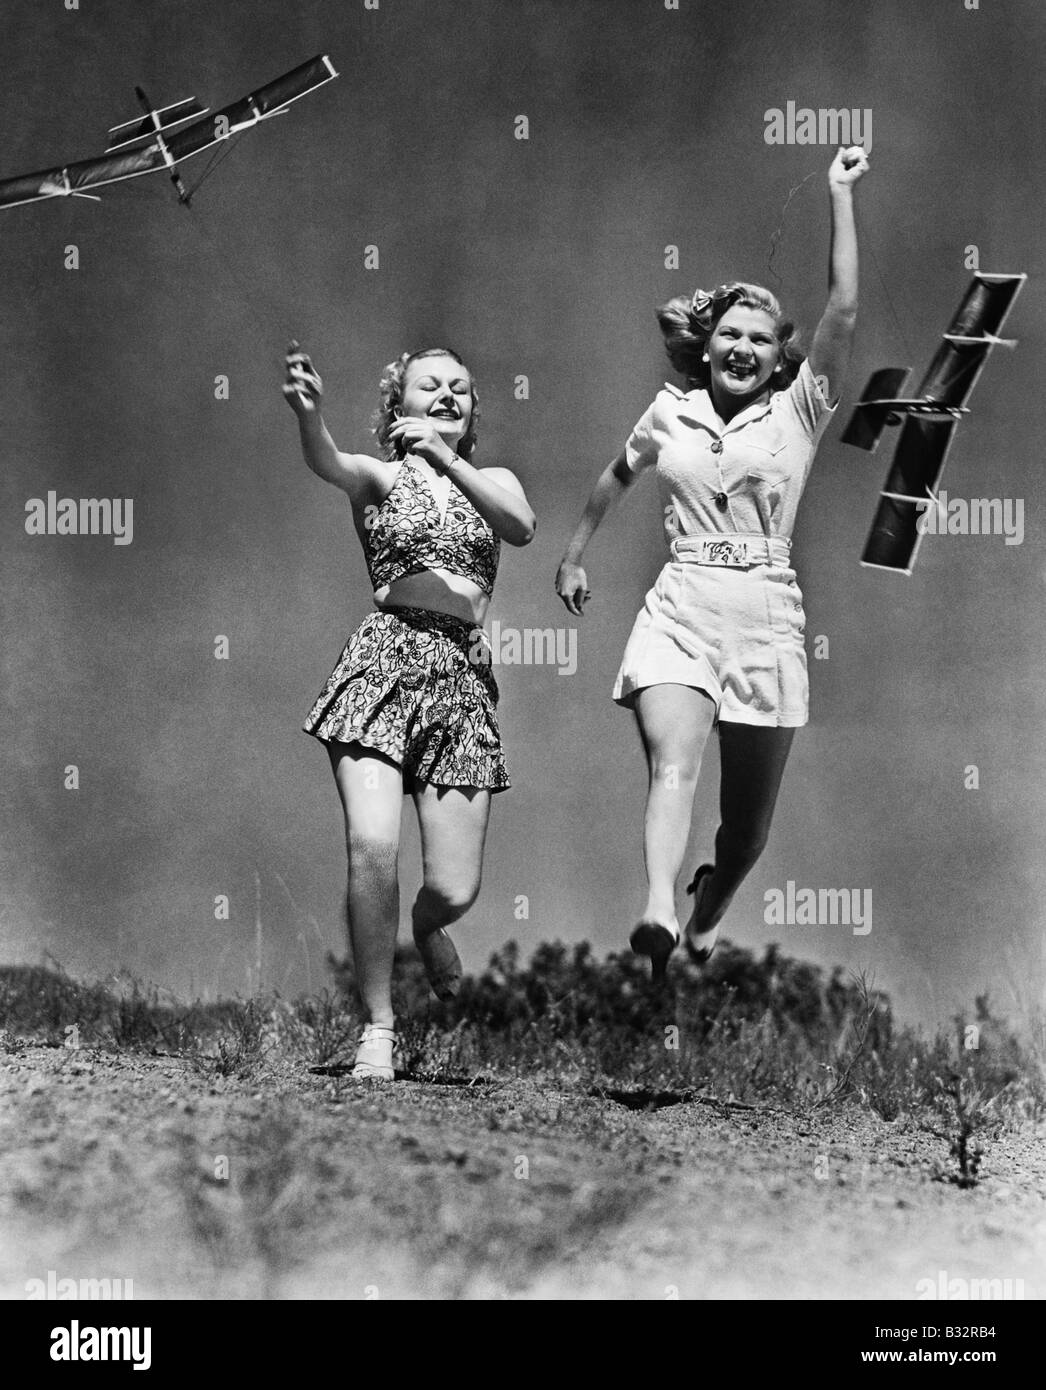 Two women running and playing with model airplanes - Stock Image